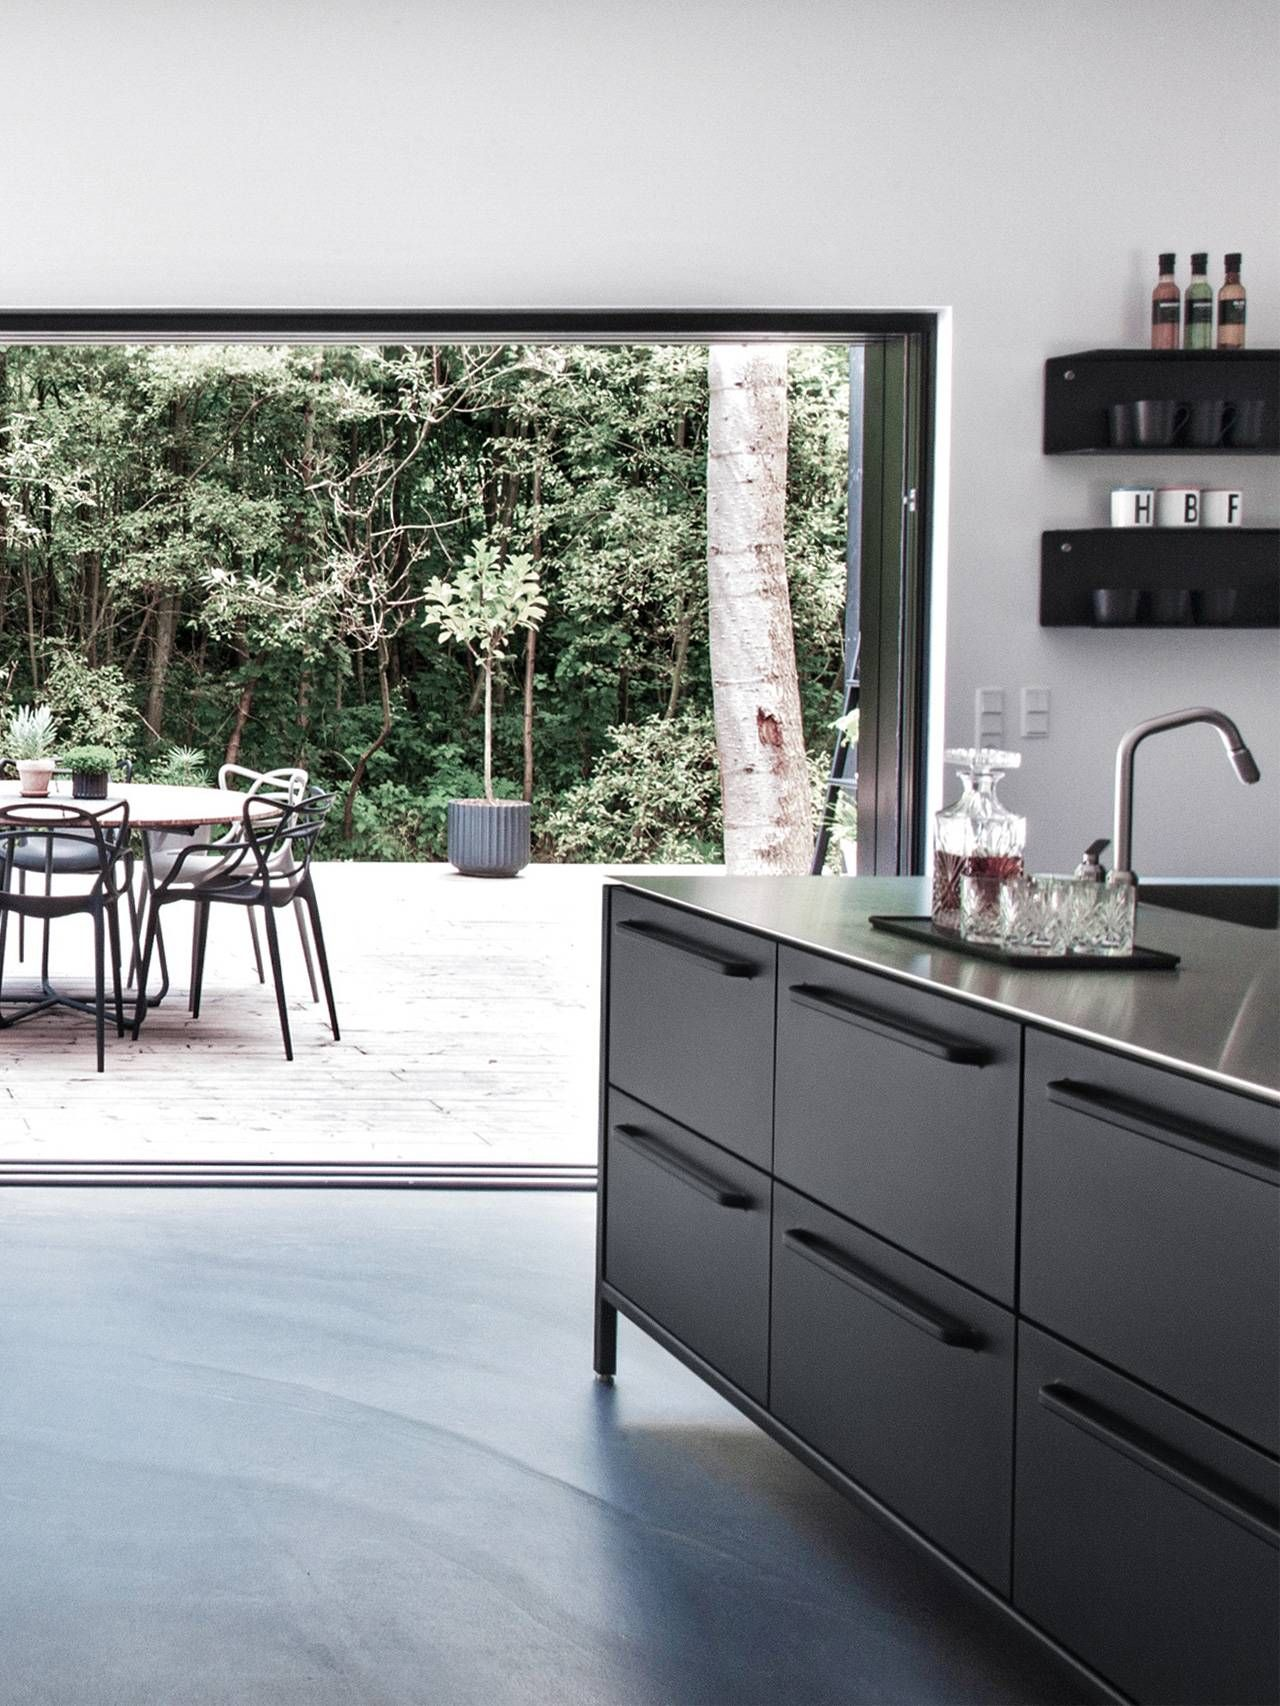 Vipp Black Kitchen Island With Stainless Steel Table Top Credit Et Hus Architecture Interieure Decoration Maison Maison D Architecture